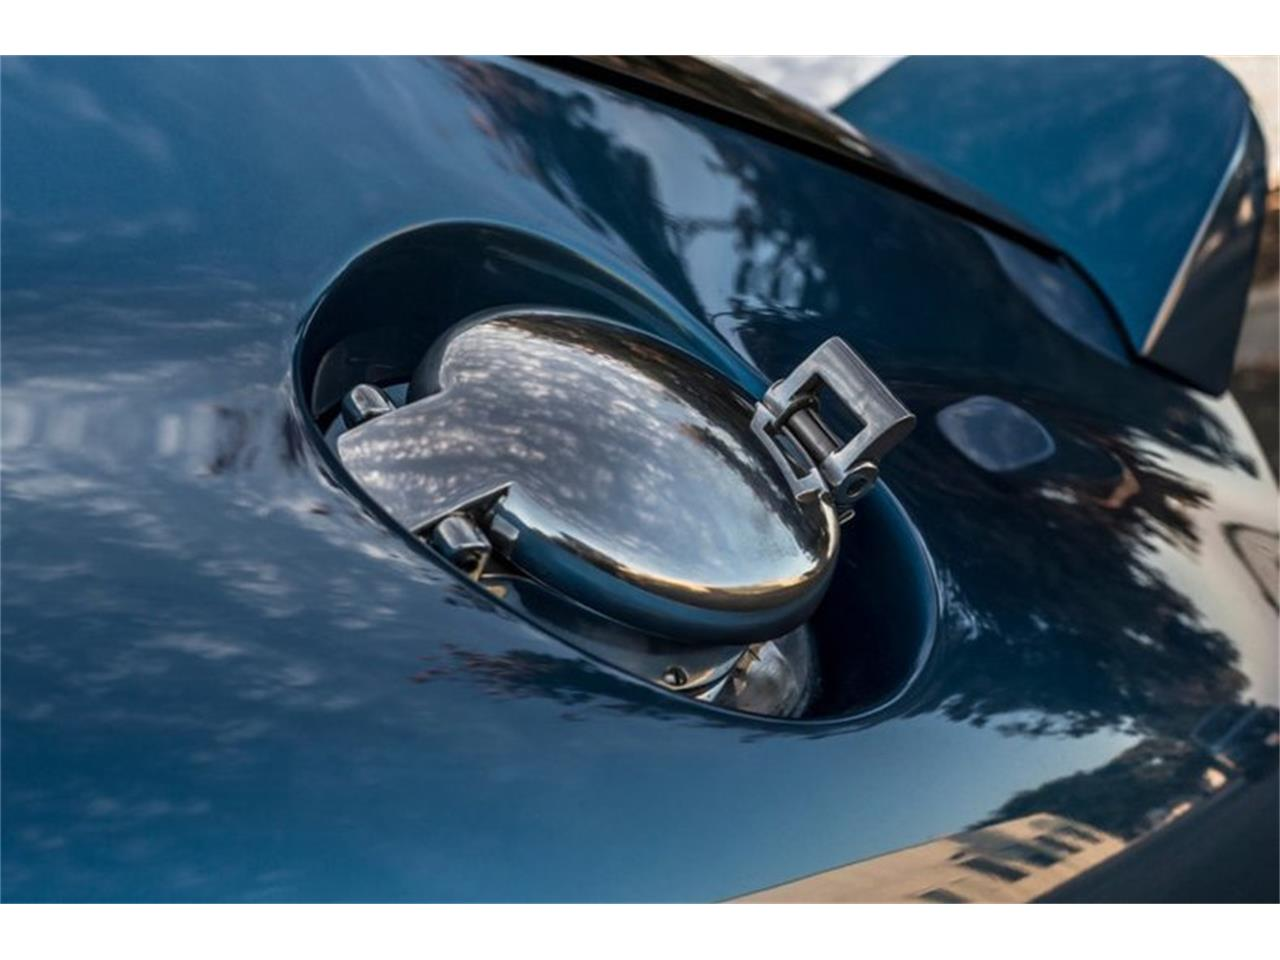 Large Picture of Classic 1964 Superformance Cobra located in California - $395,000.00 Offered by Hillbank Motorsports - PNWD